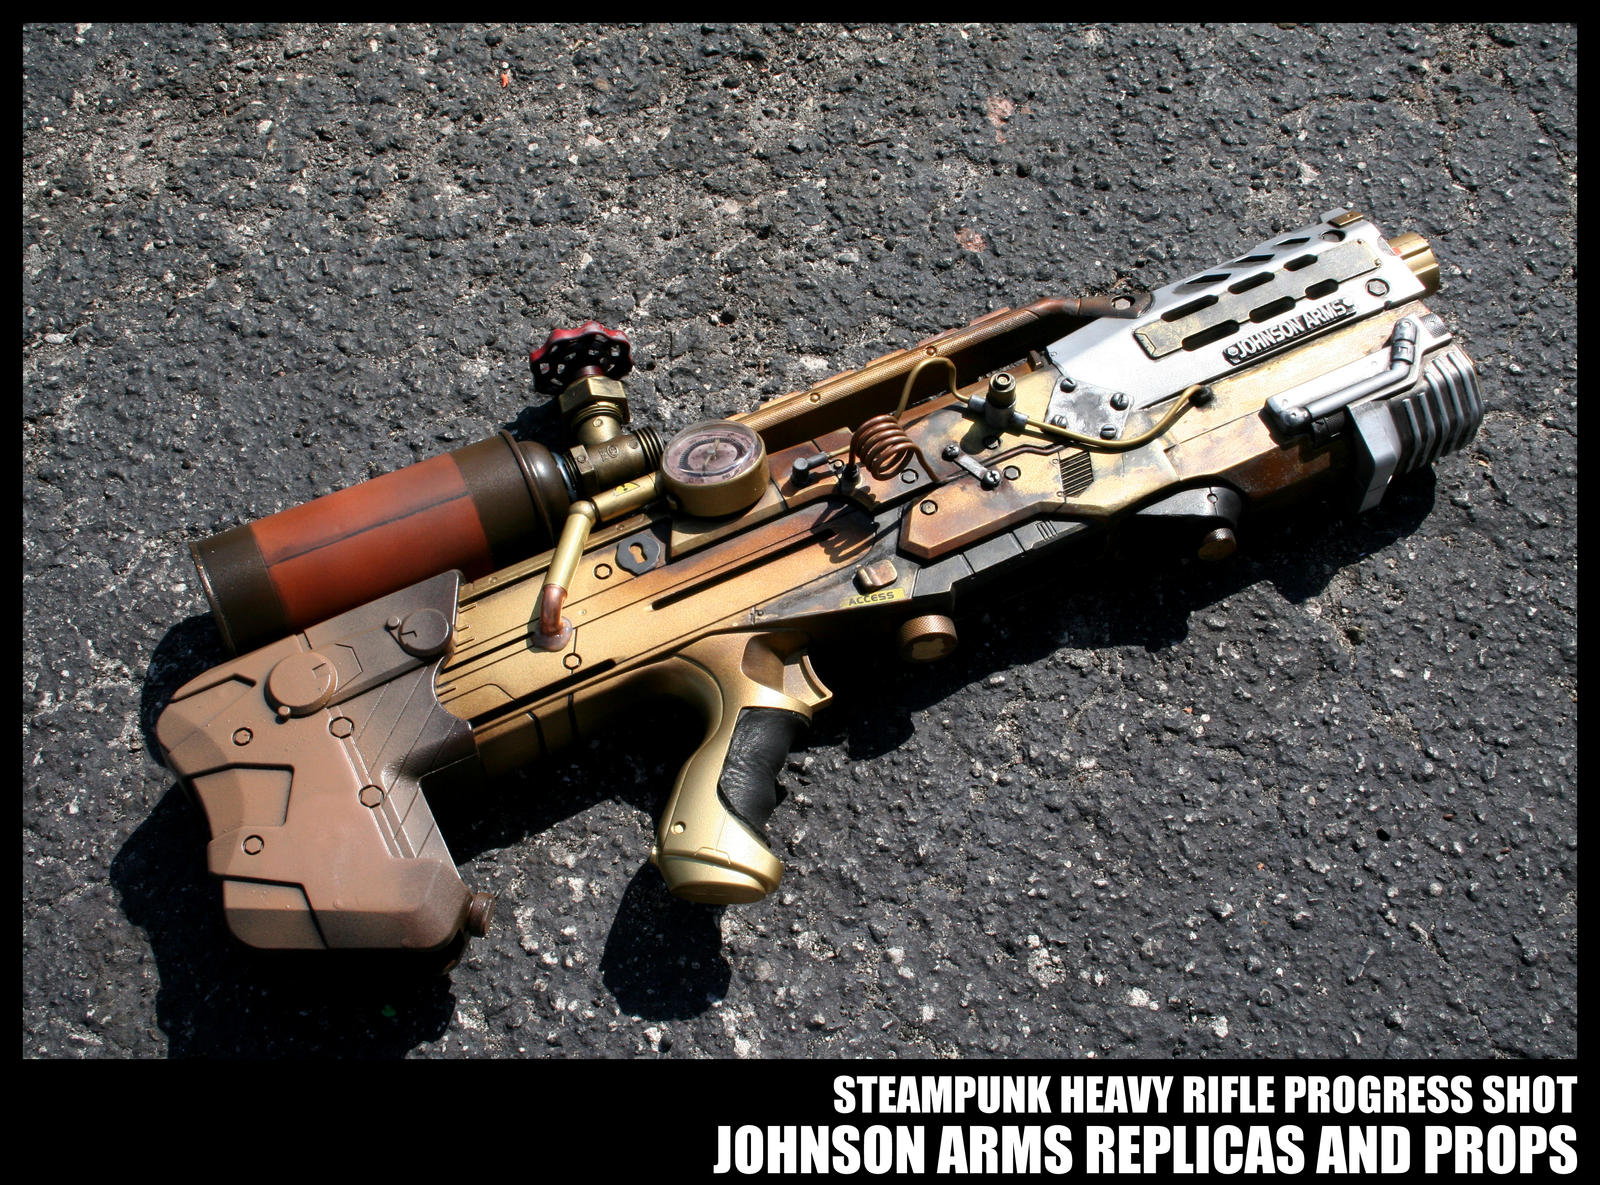 Advanced Steampunk Technology Update by JohnsonArms